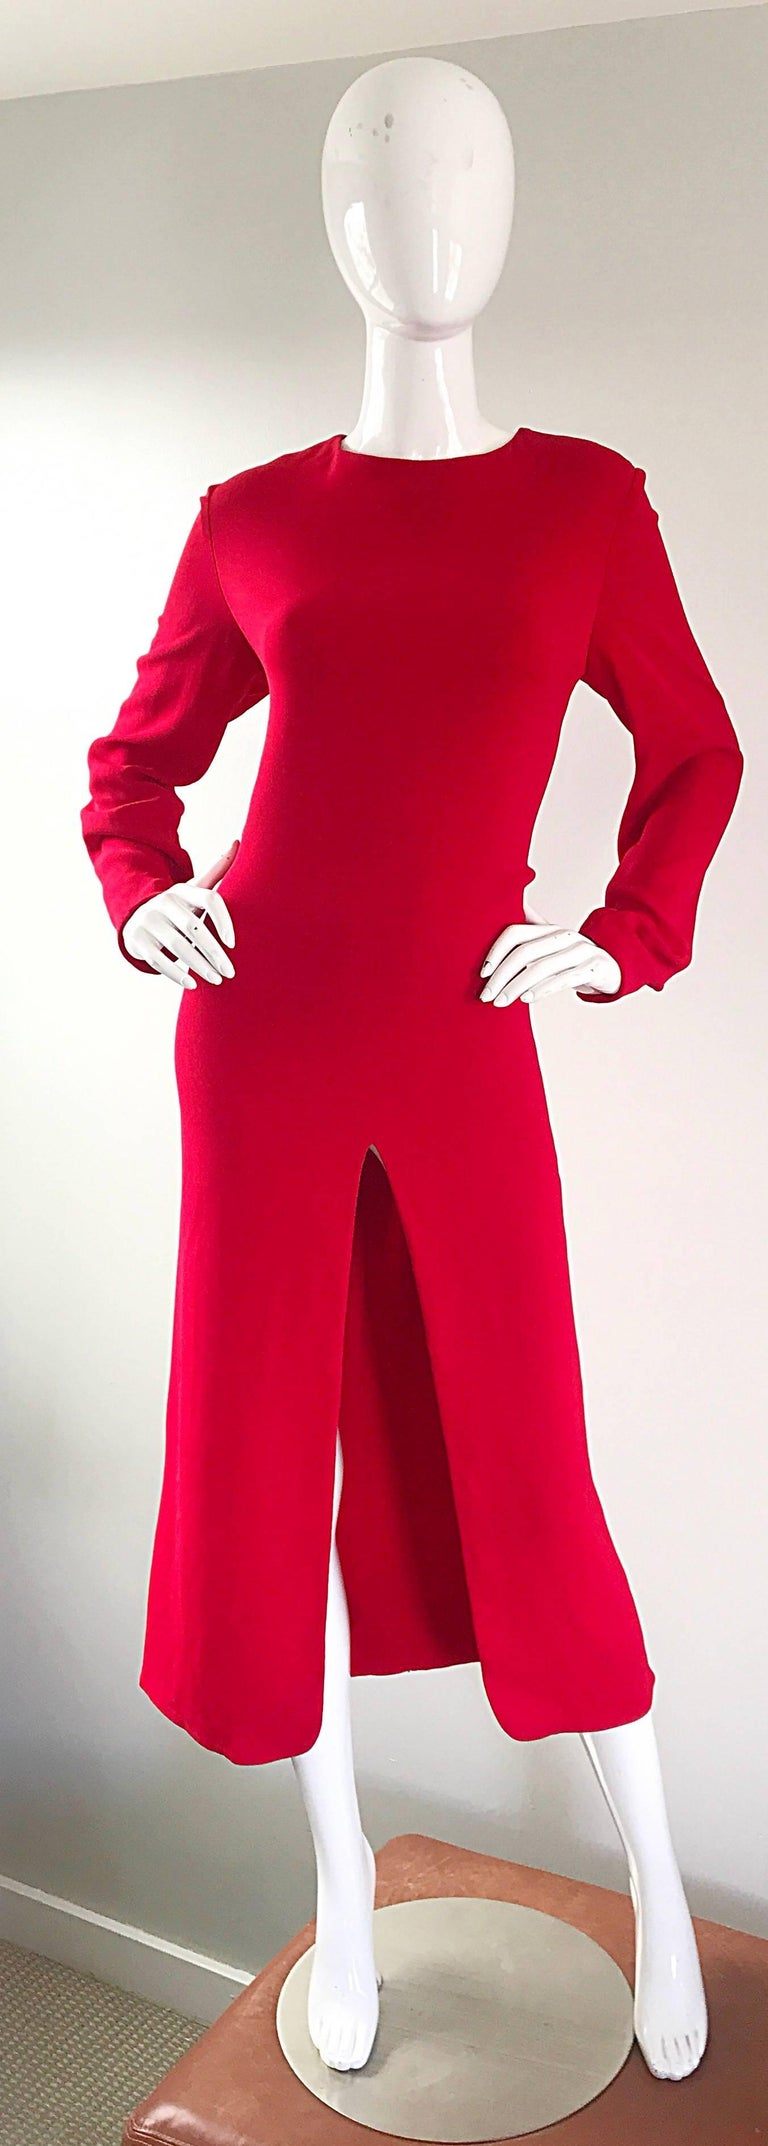 1990s Badgley Mischka Size 10 / 12 Lipstick Red Long Sleeve 90s Evening Dress 2